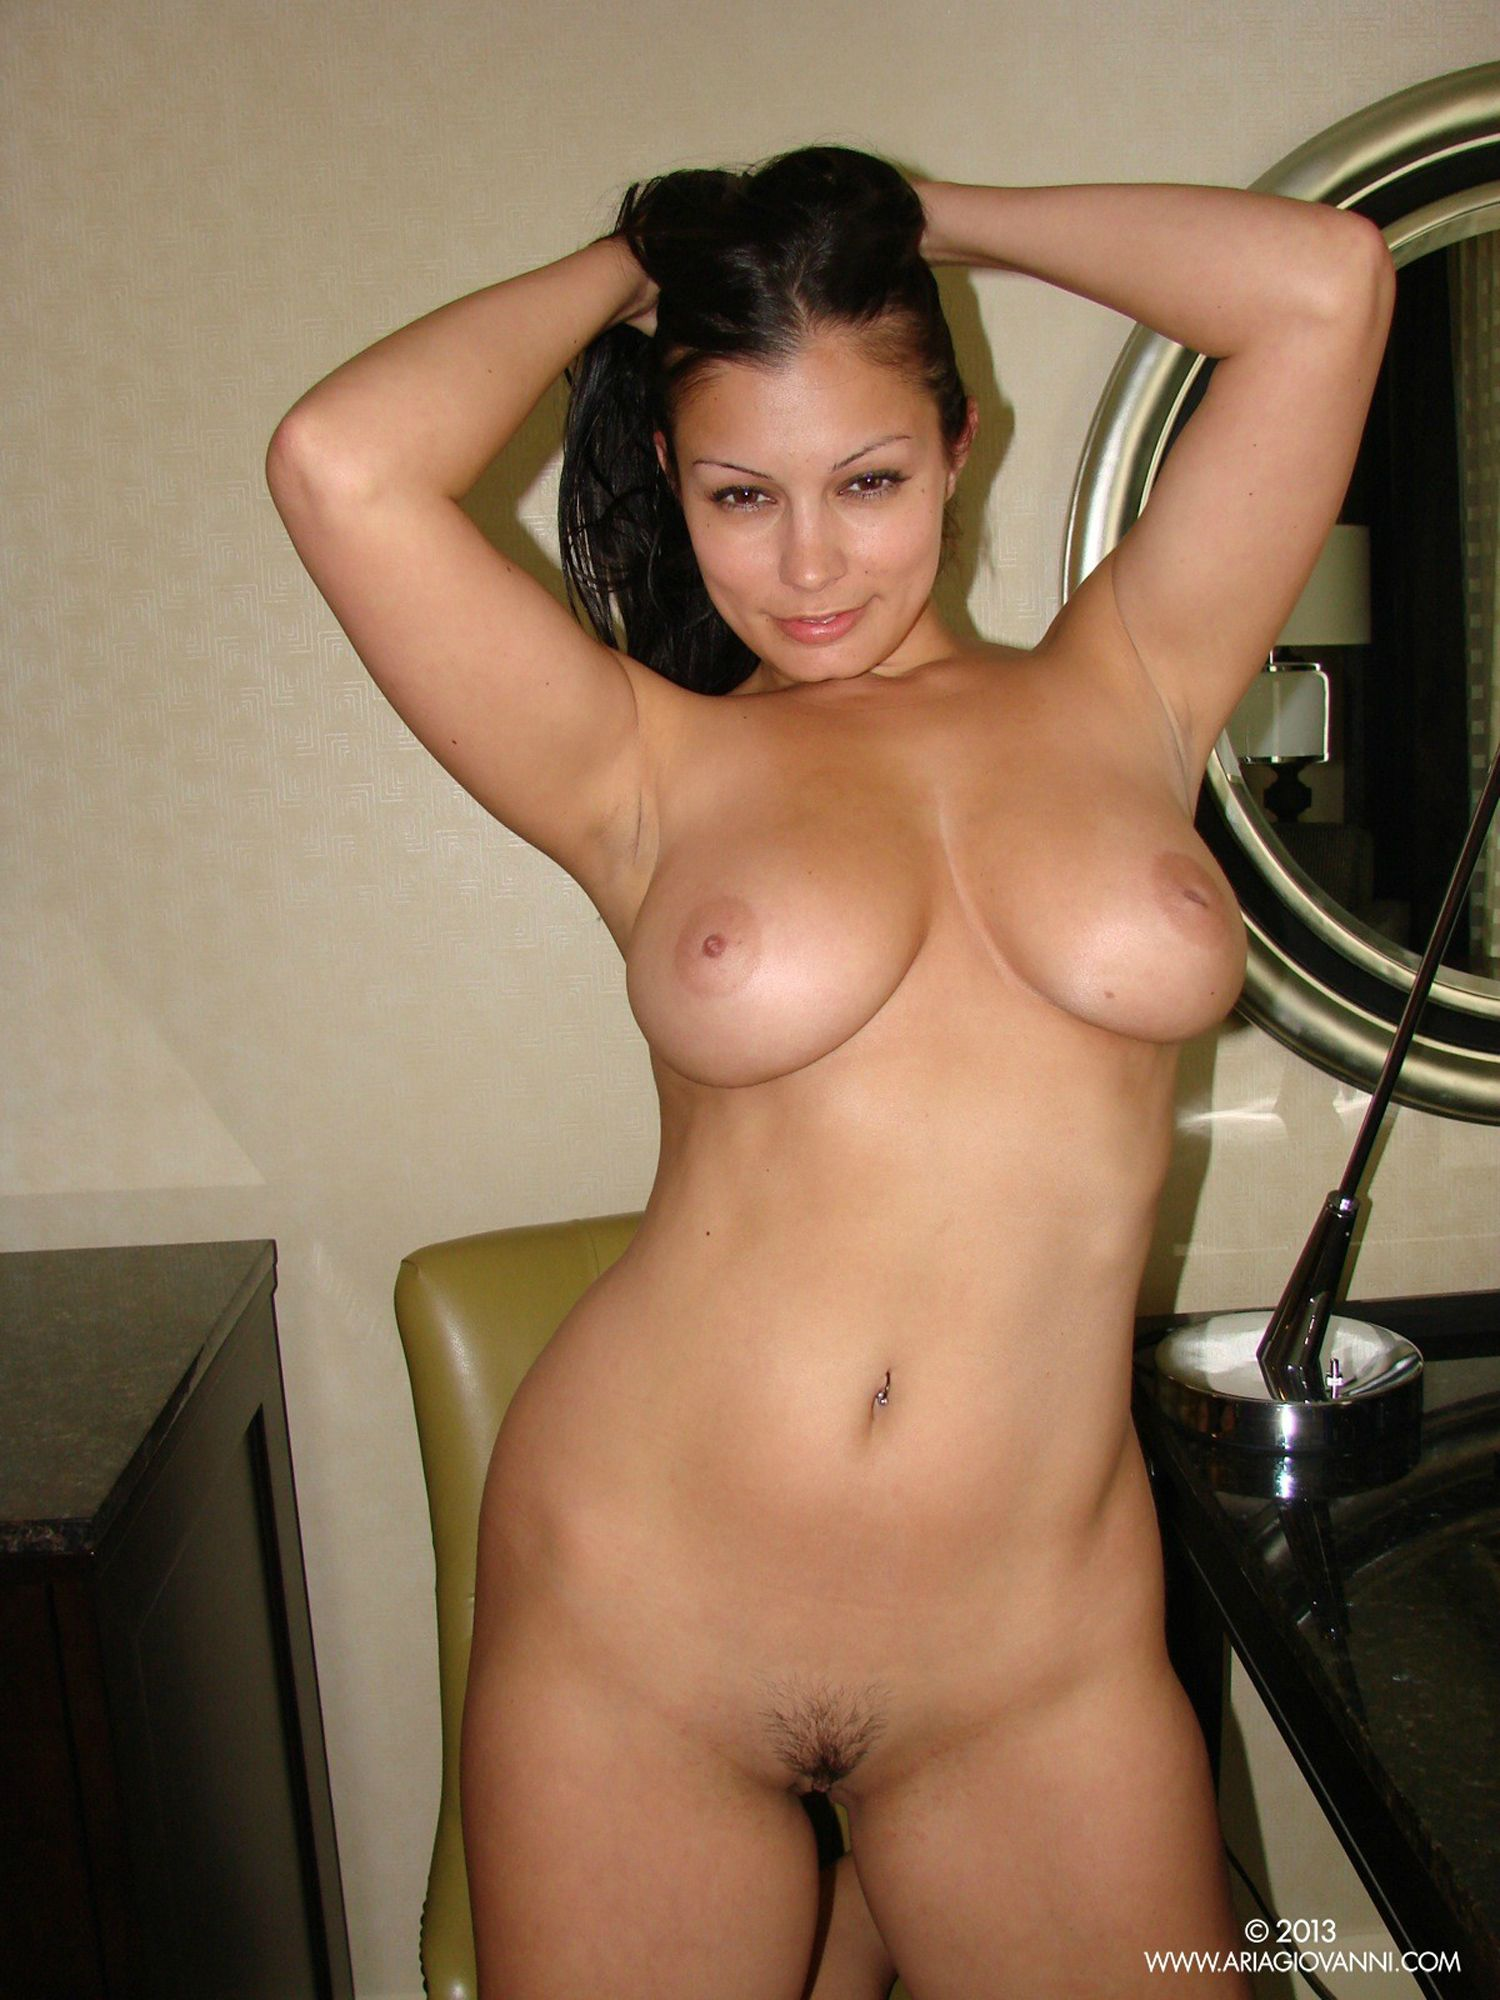 image Aria giovanni stunning body in one of her first photo shoots